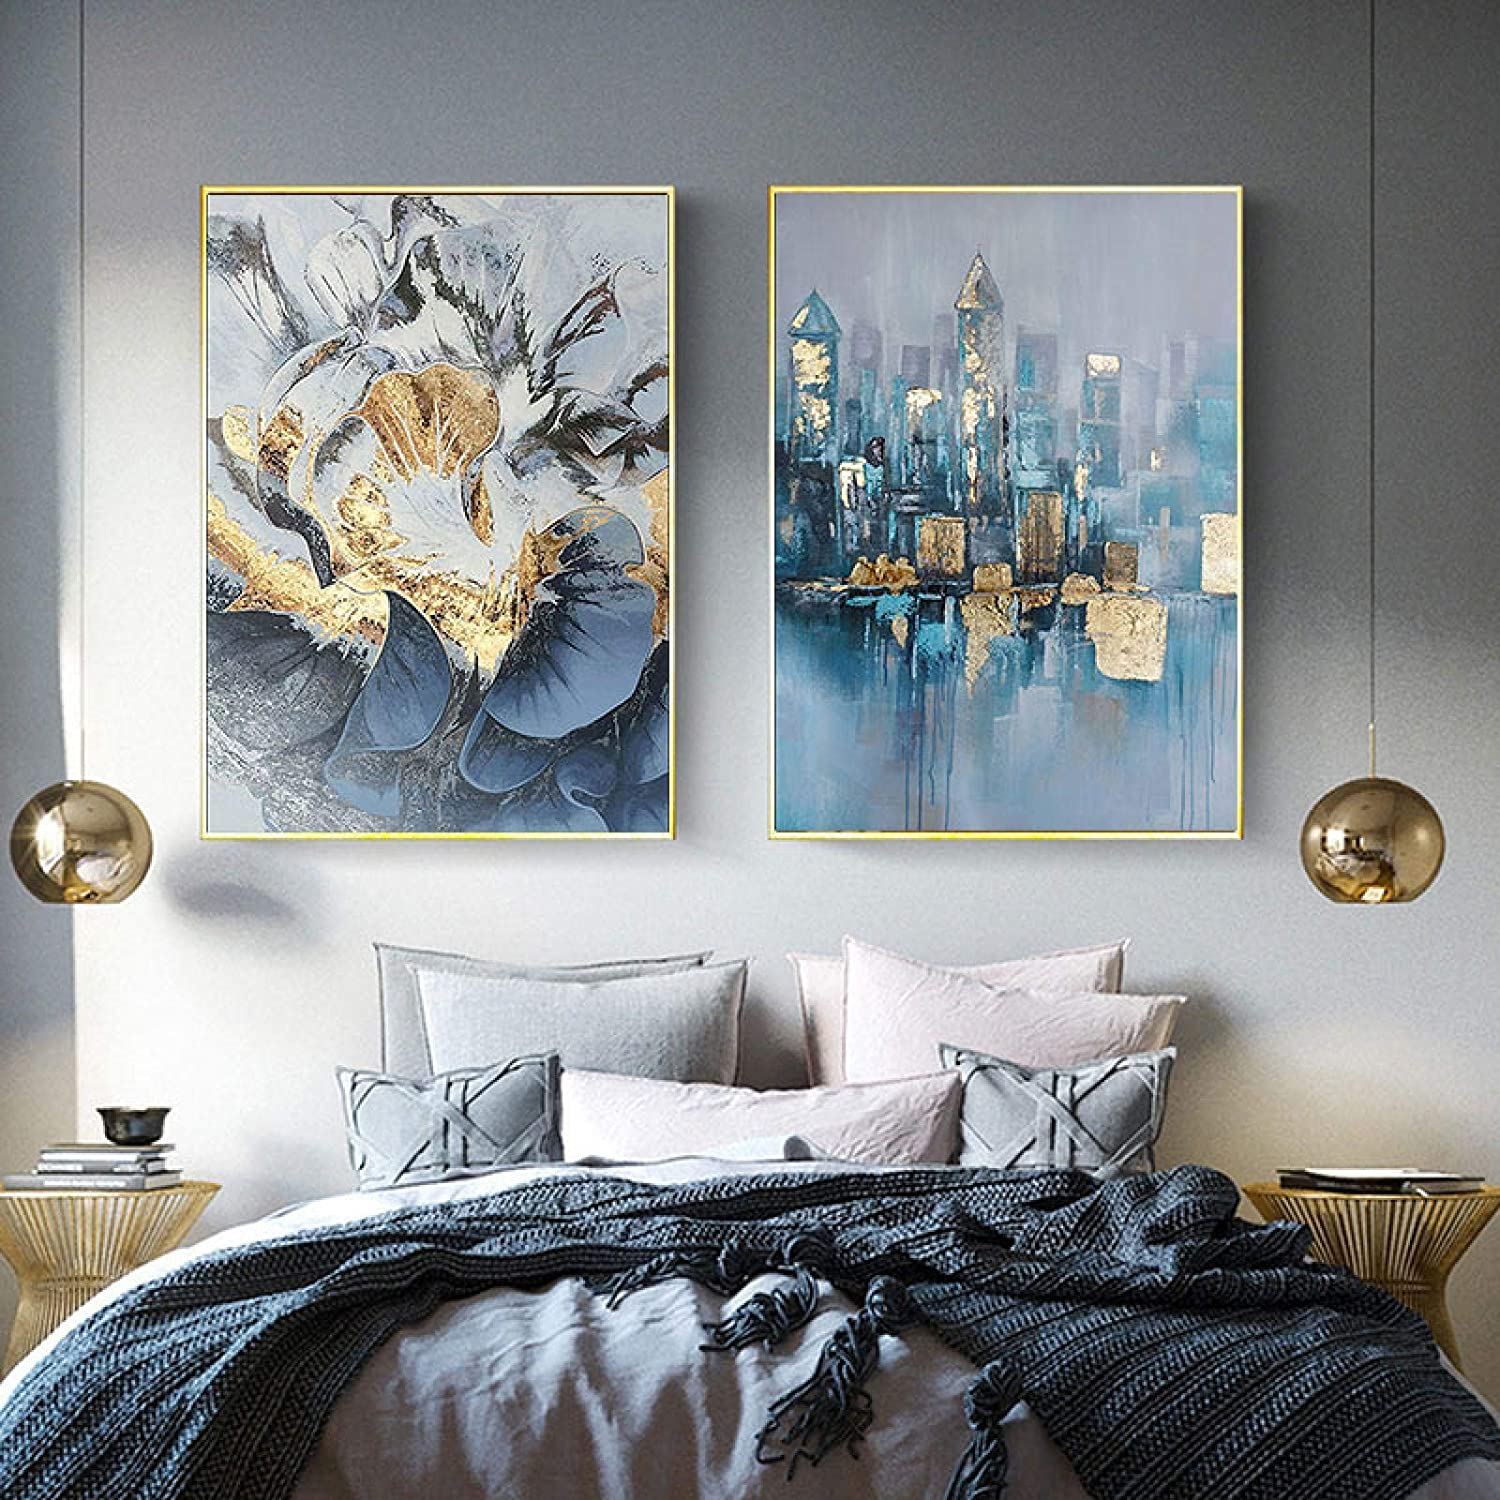 Cheap mail order sales Sunsightly Print on Canvas Abstract C Flower Art Animer and price revision Building Golden